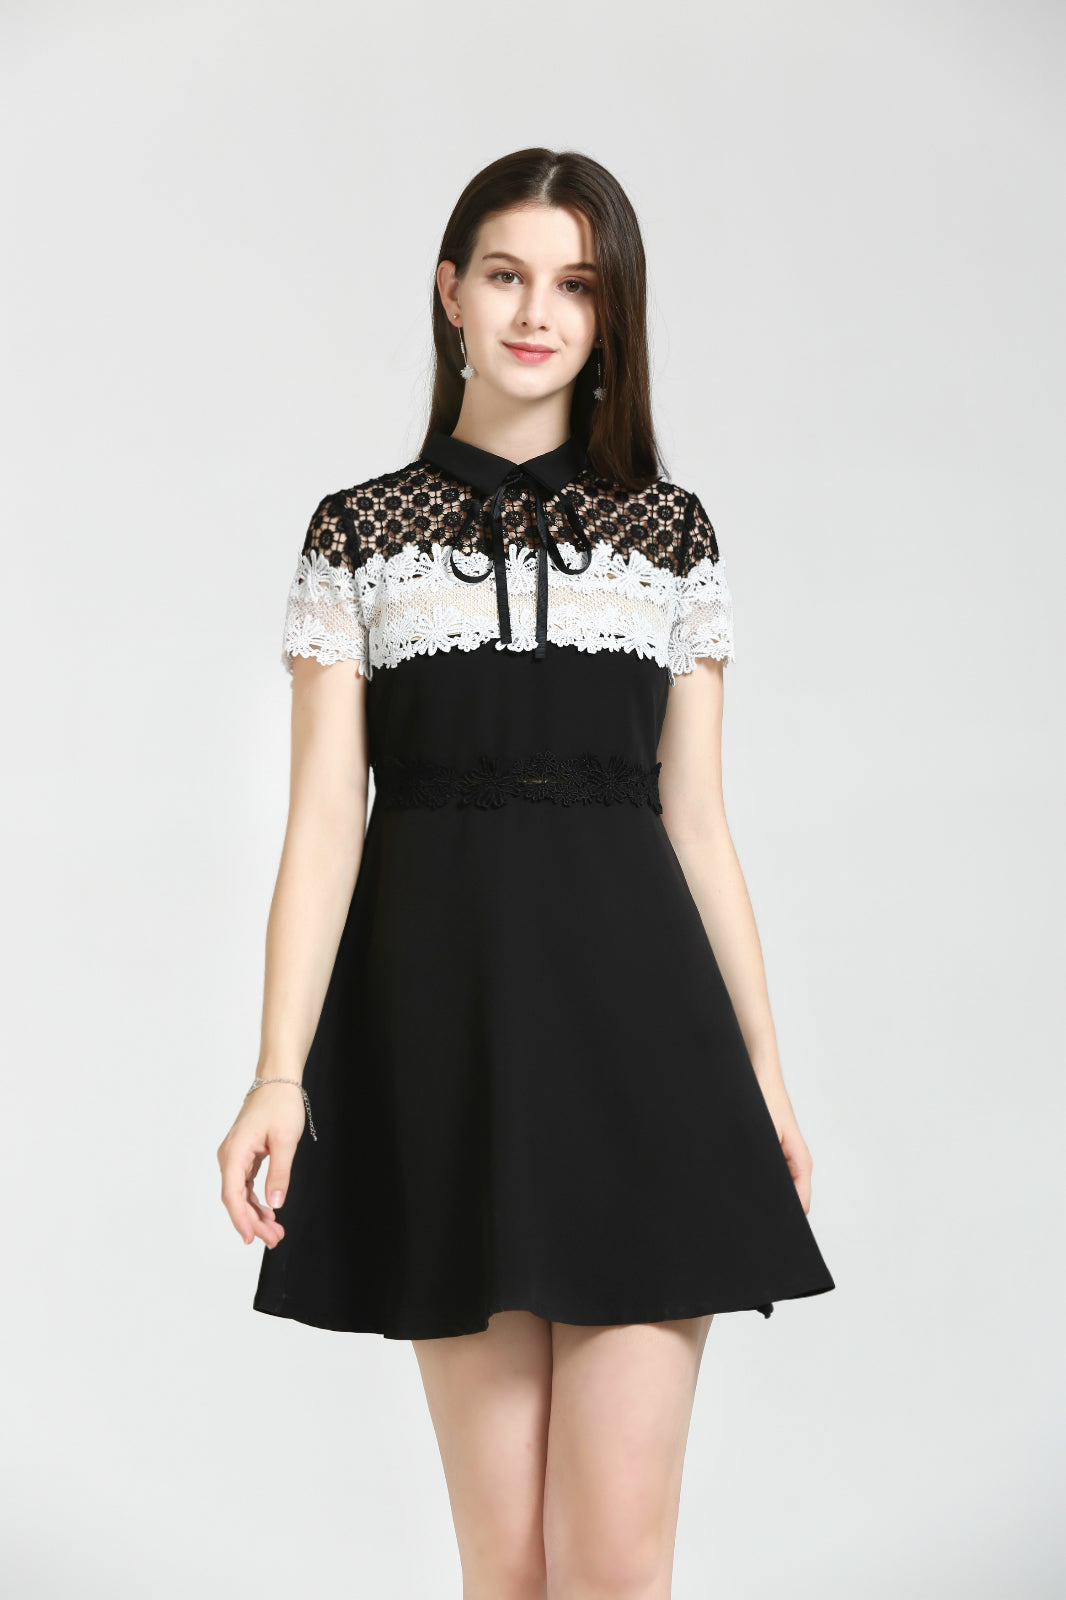 Black-And-White Dress With Lace Upper Bodice